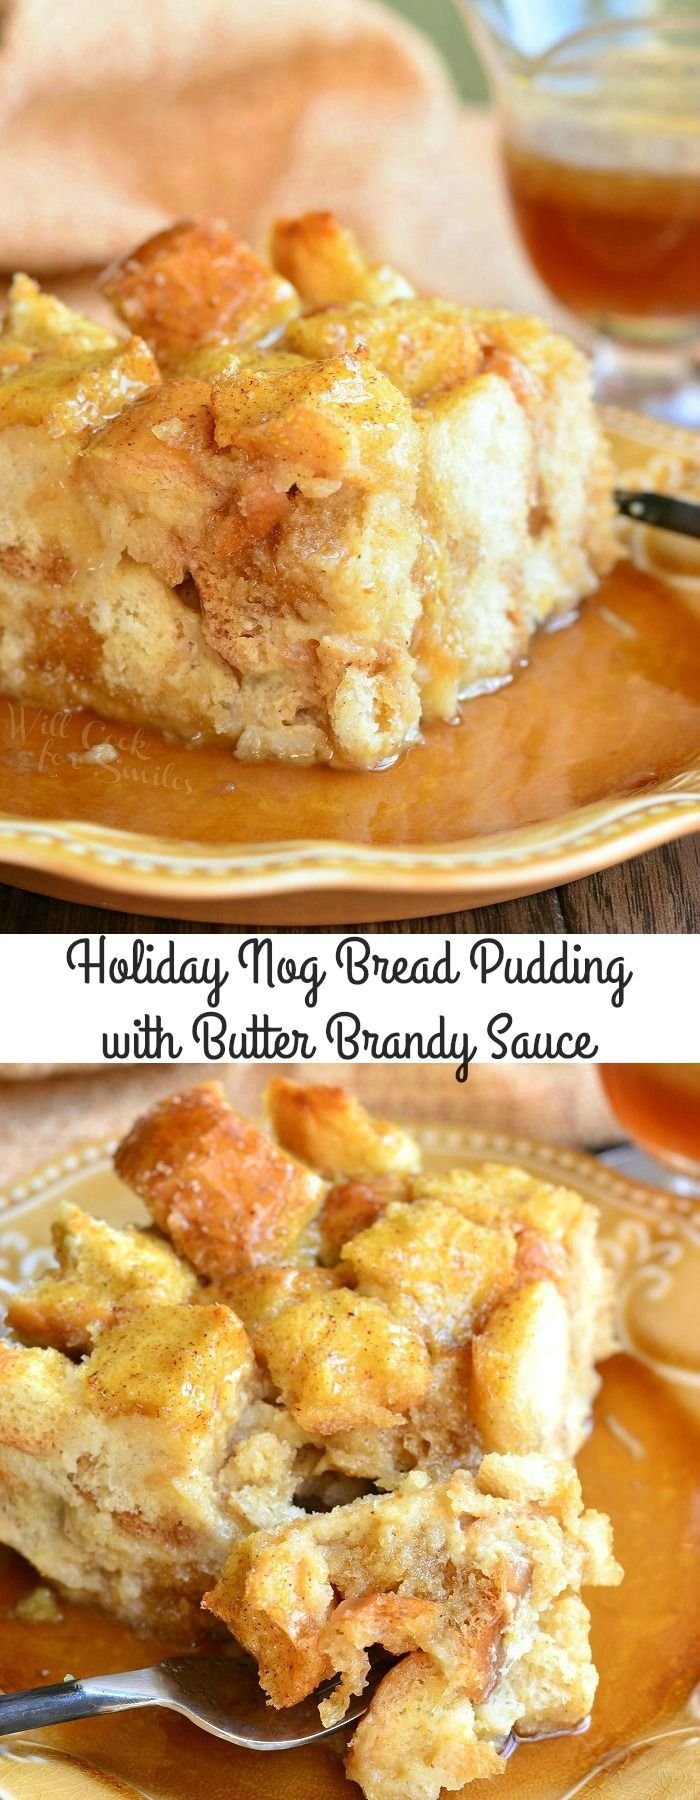 Holiday Nog Bread Pudding with Butter Brandy Sauce | from willcookforsmiles.com #breadpudding #dessert #eggnog